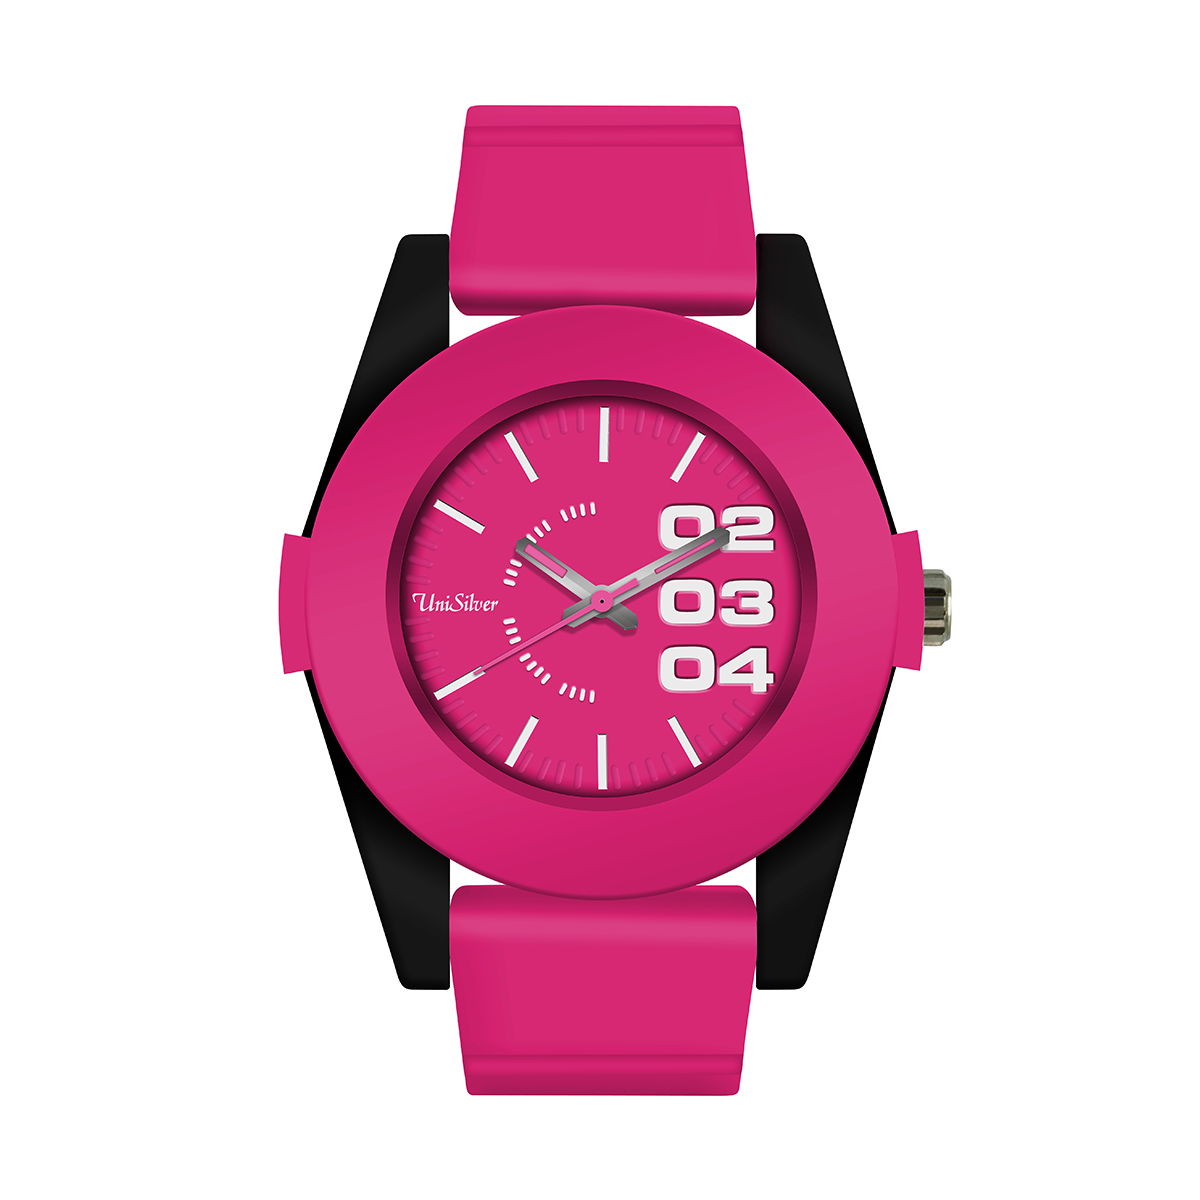 HALLYU ANALOG WATCH